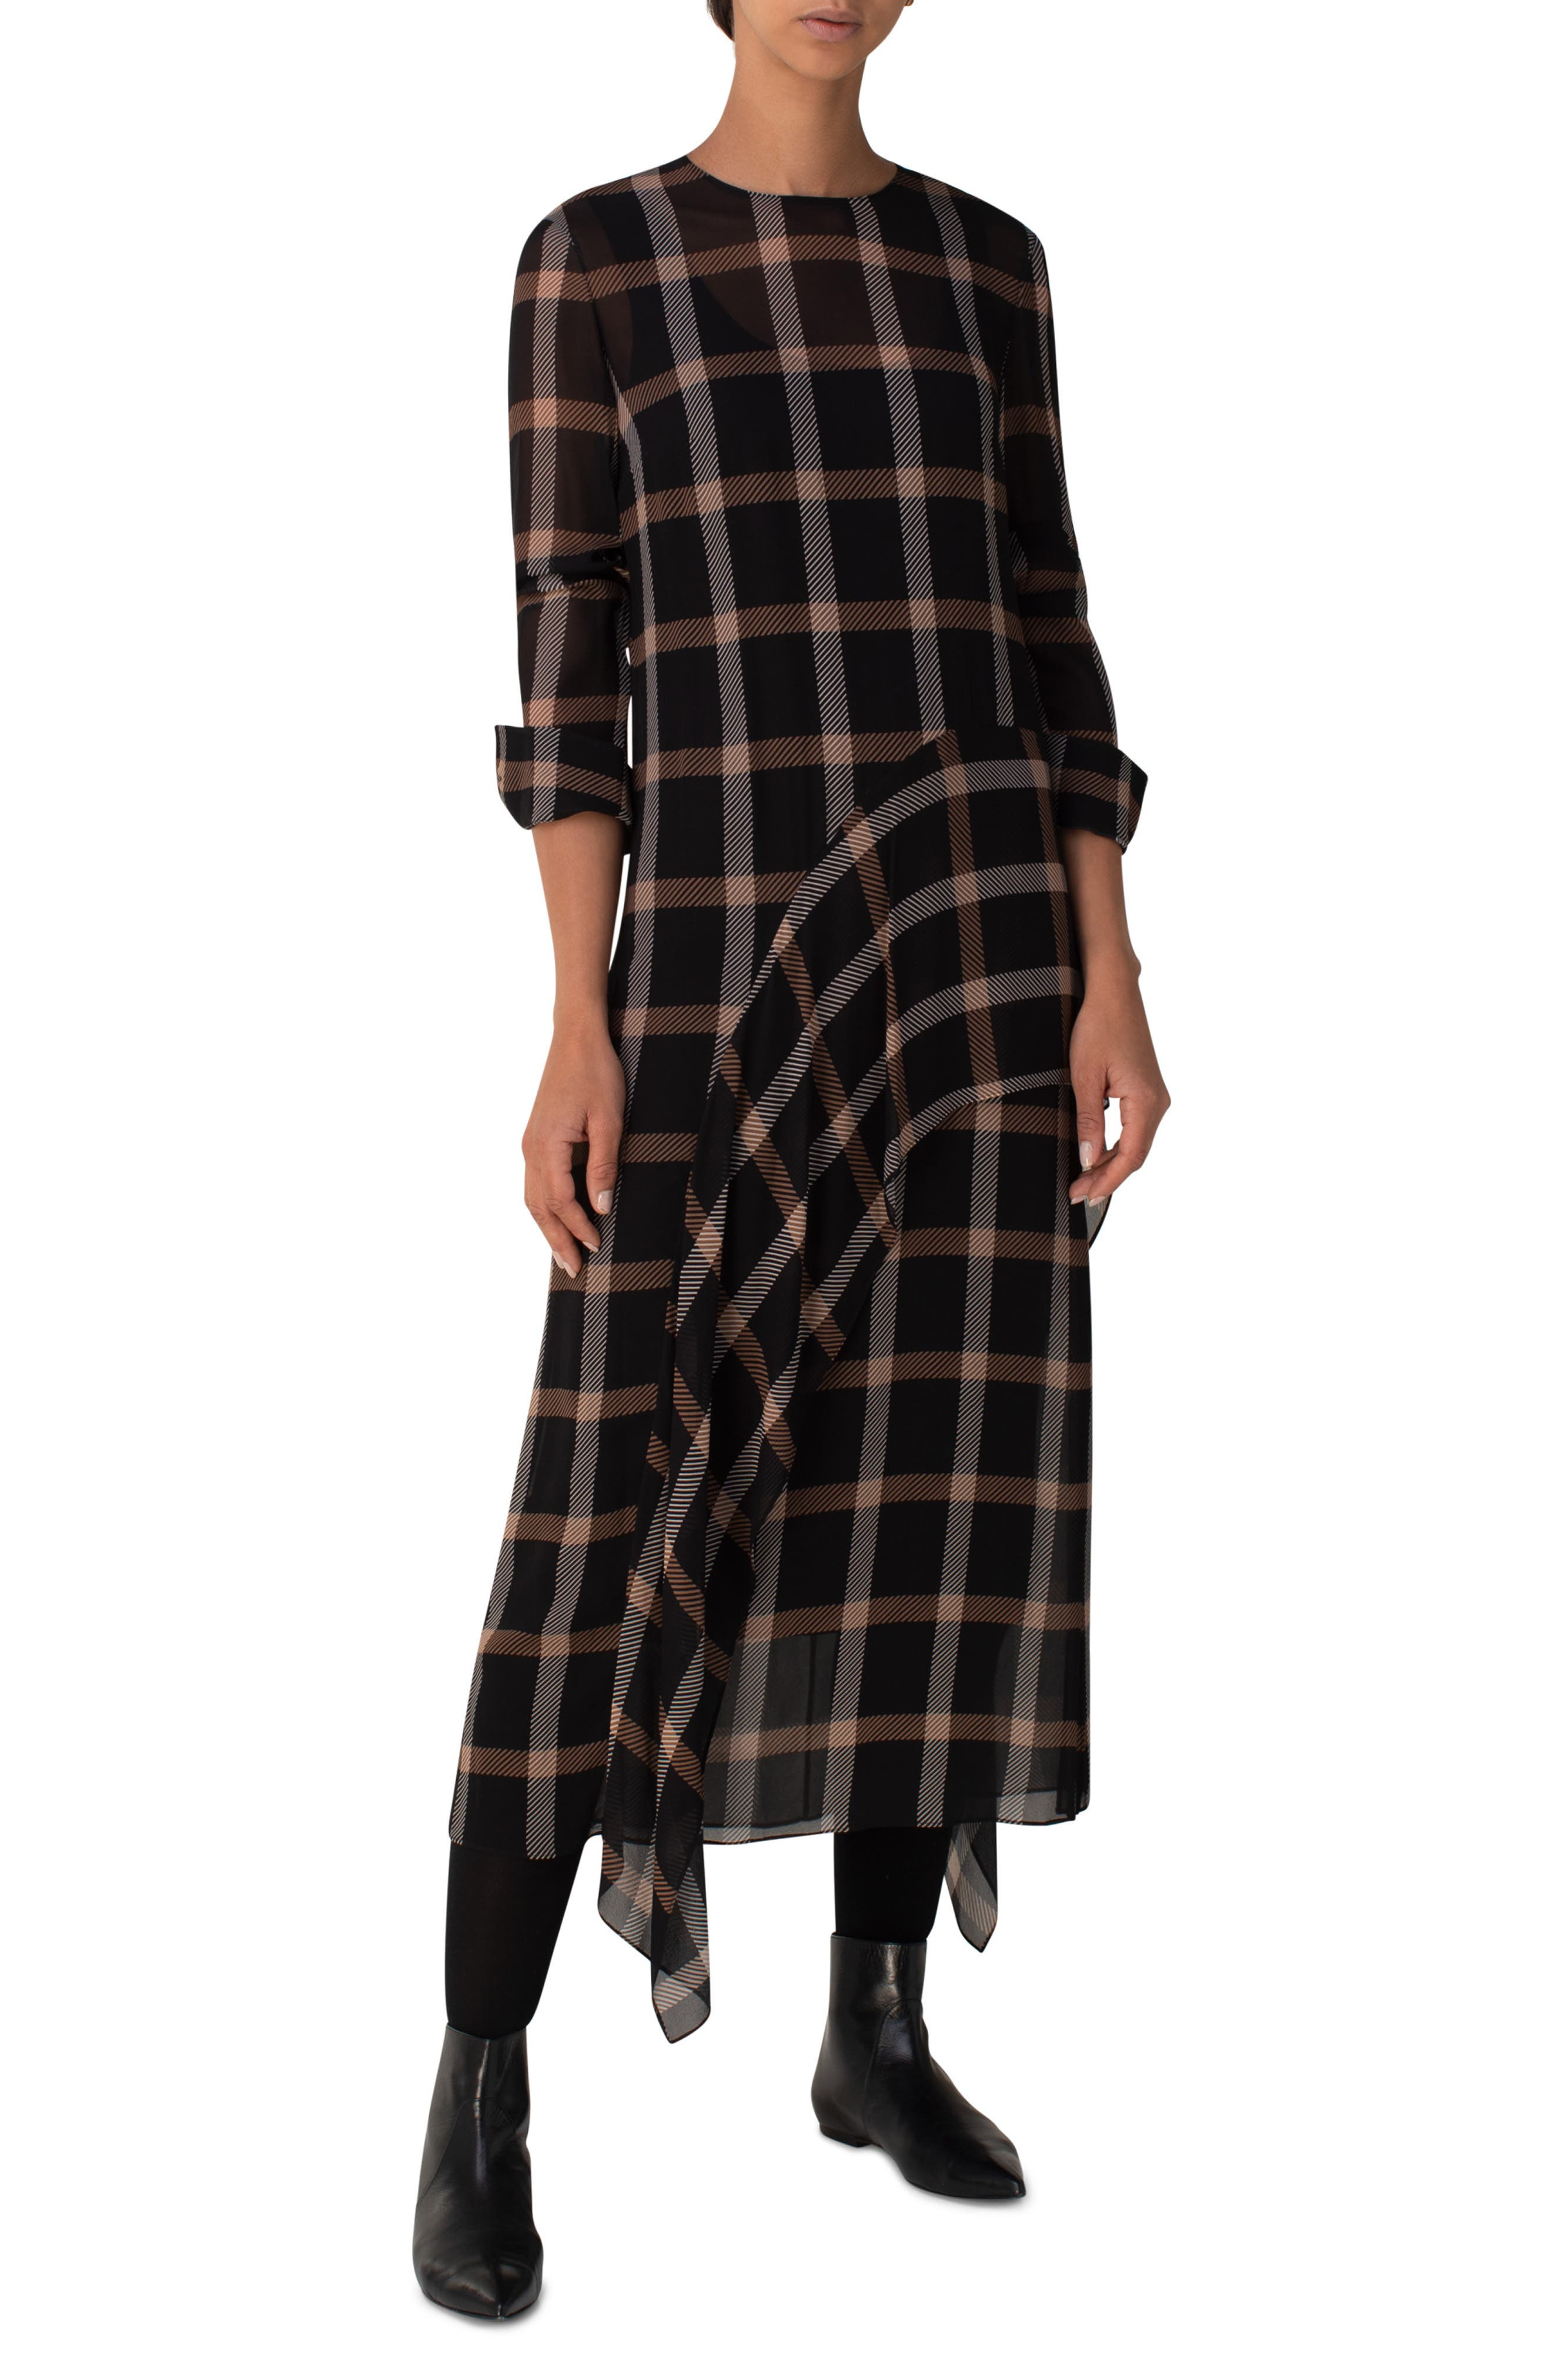 Bias seaming fashions the fluttery, asymmetrically draped skirt of this semi-sheer woven dress patterned with bold windowpane checks. Style Name: Akris Punto Windowpane Check Long Sleeve Midi Dress. Style Number: 6046472. Available in stores.